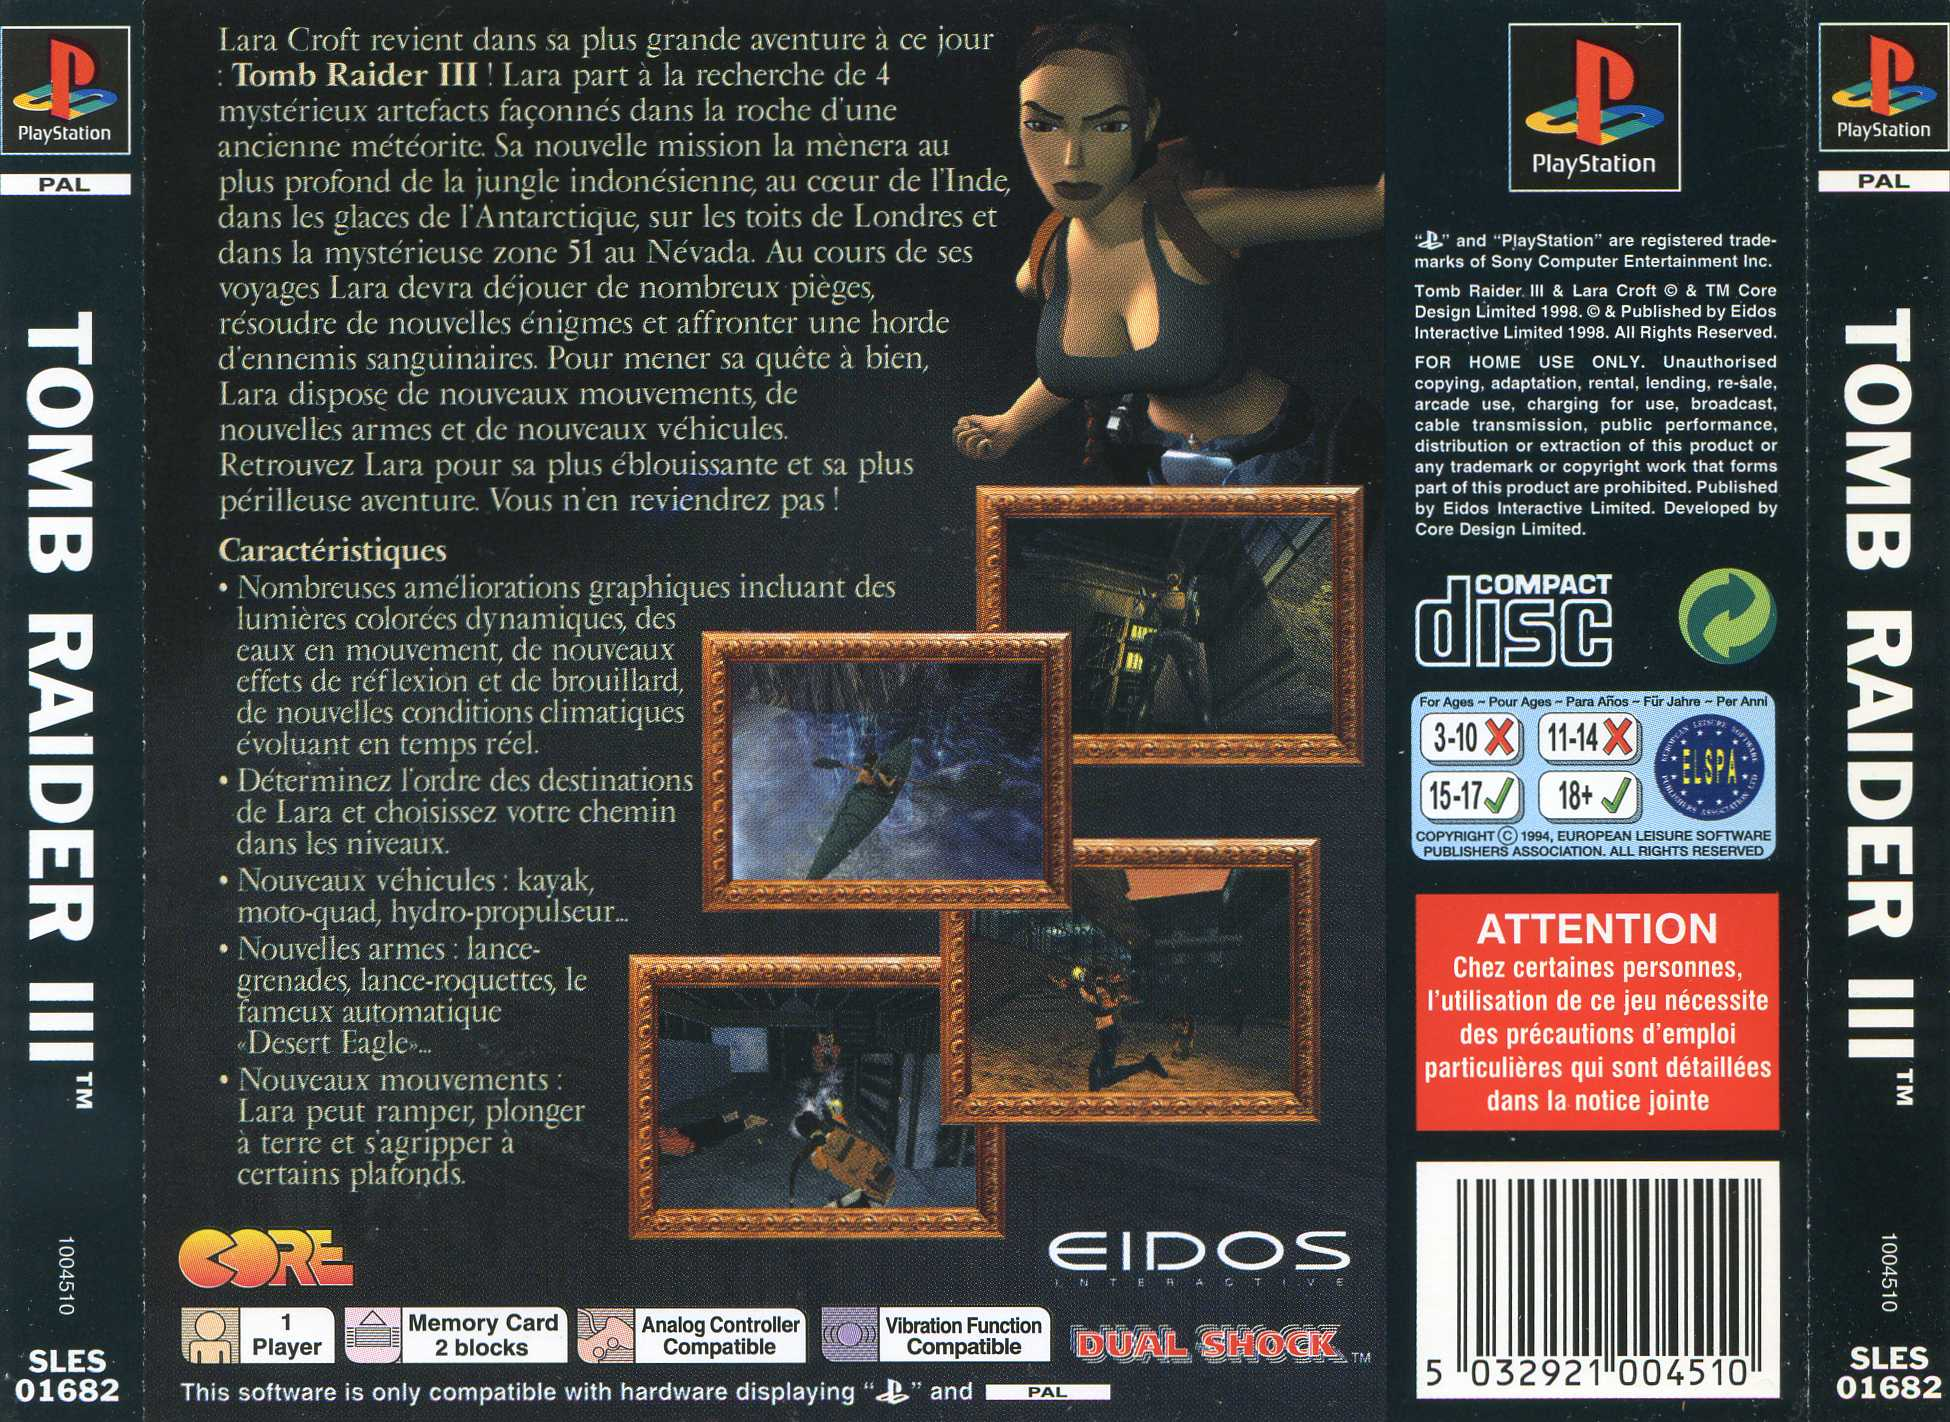 tomb raider ps1 cover